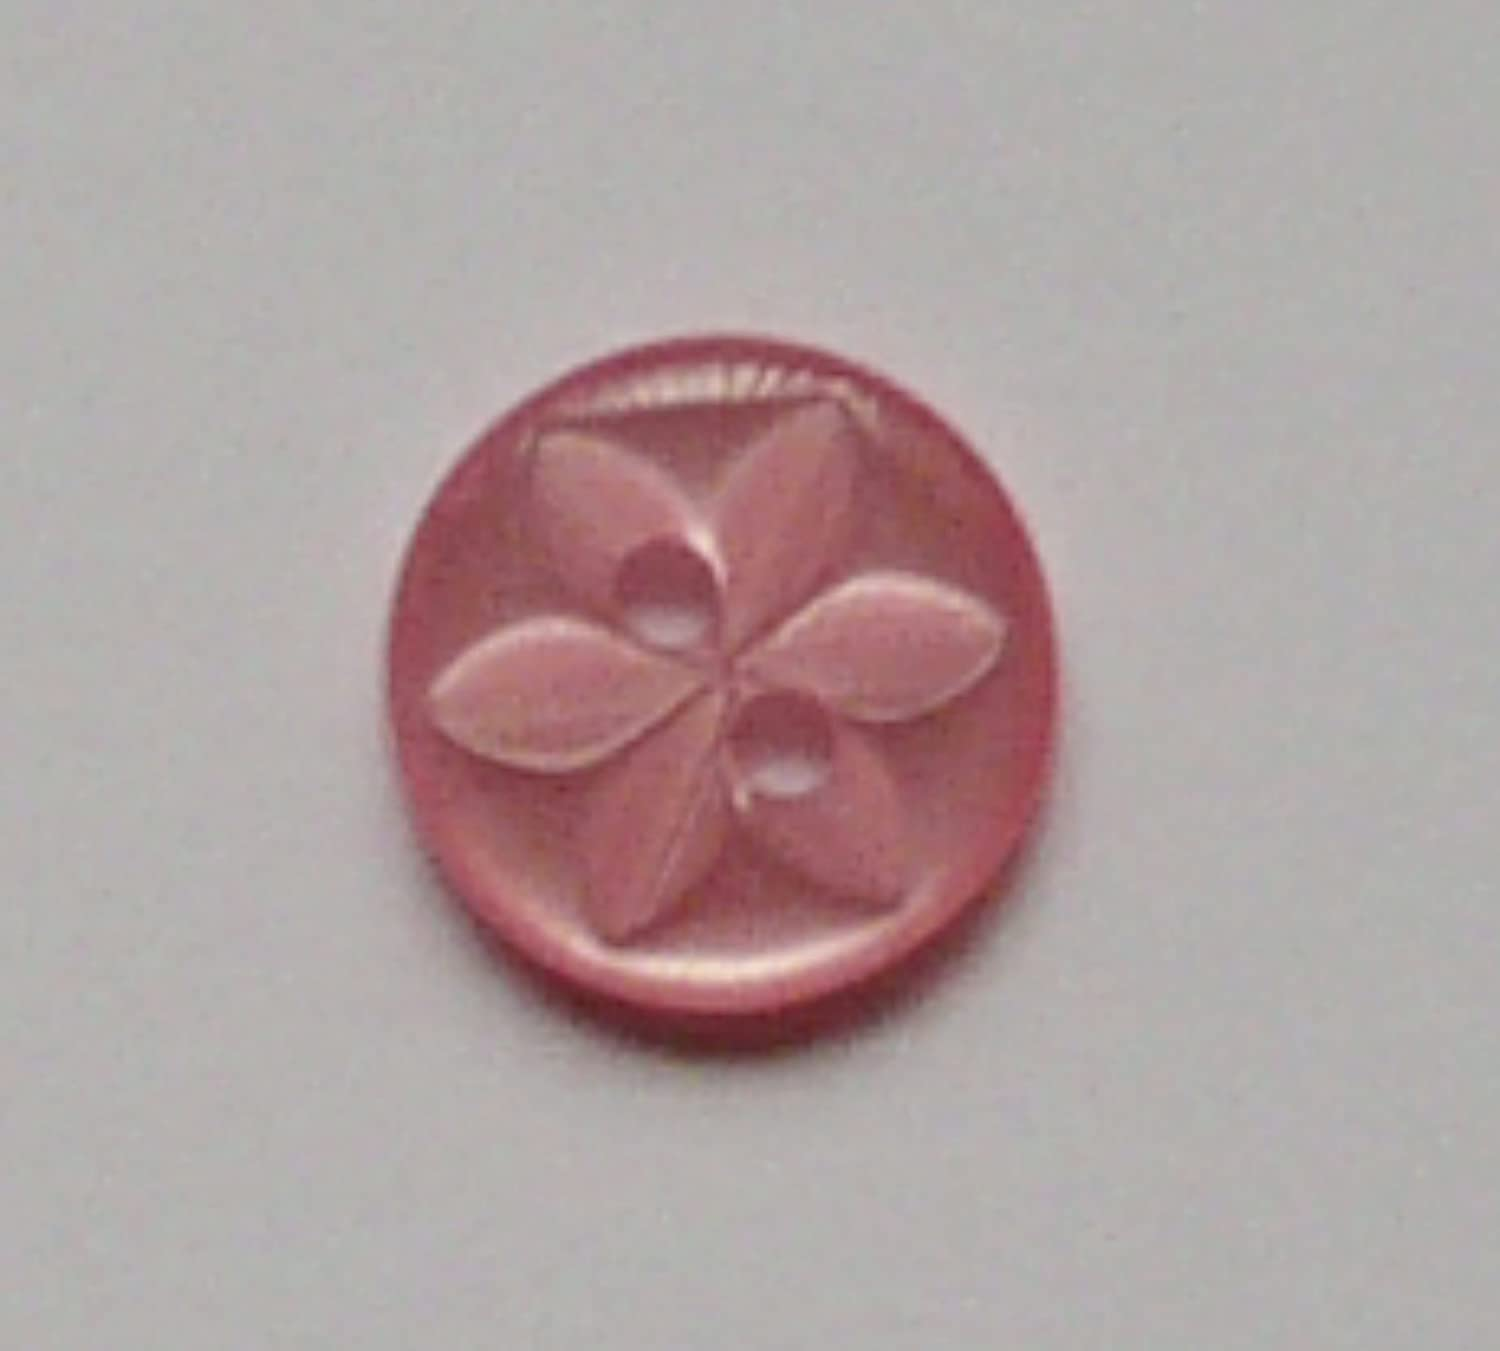 NEW PACK OF 100 14mm PINK STAR BABY BUTTONS POLYESTER SIZE 22 14MM